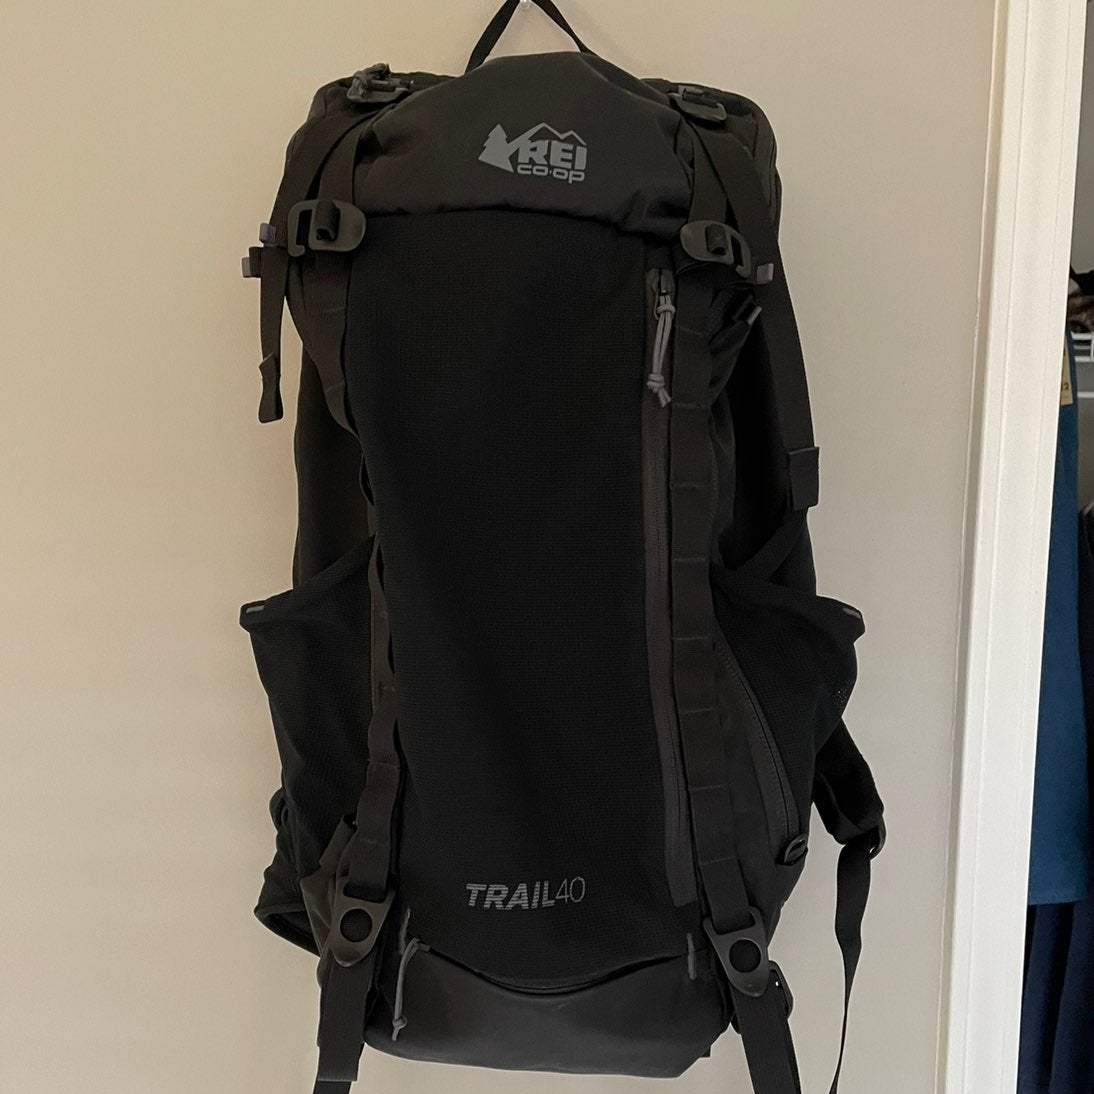 REI Trail 40 Backpack